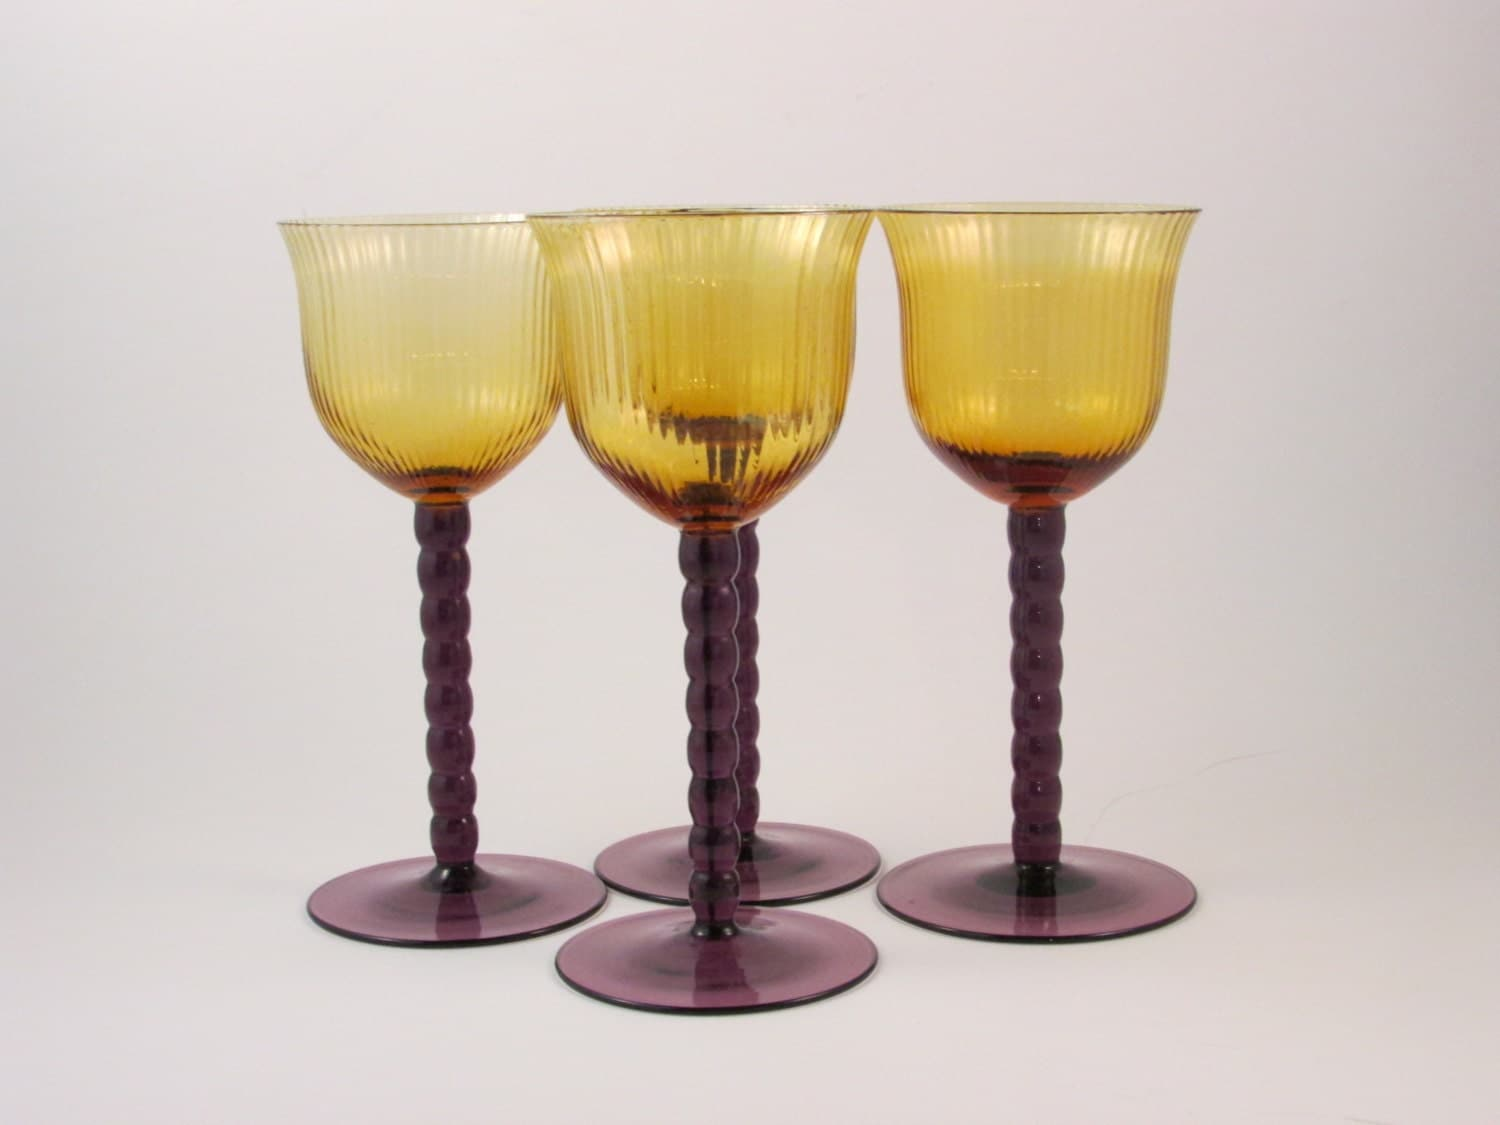 Vintage Long Stem Wine Glasses Amber Glass With Purple Stems